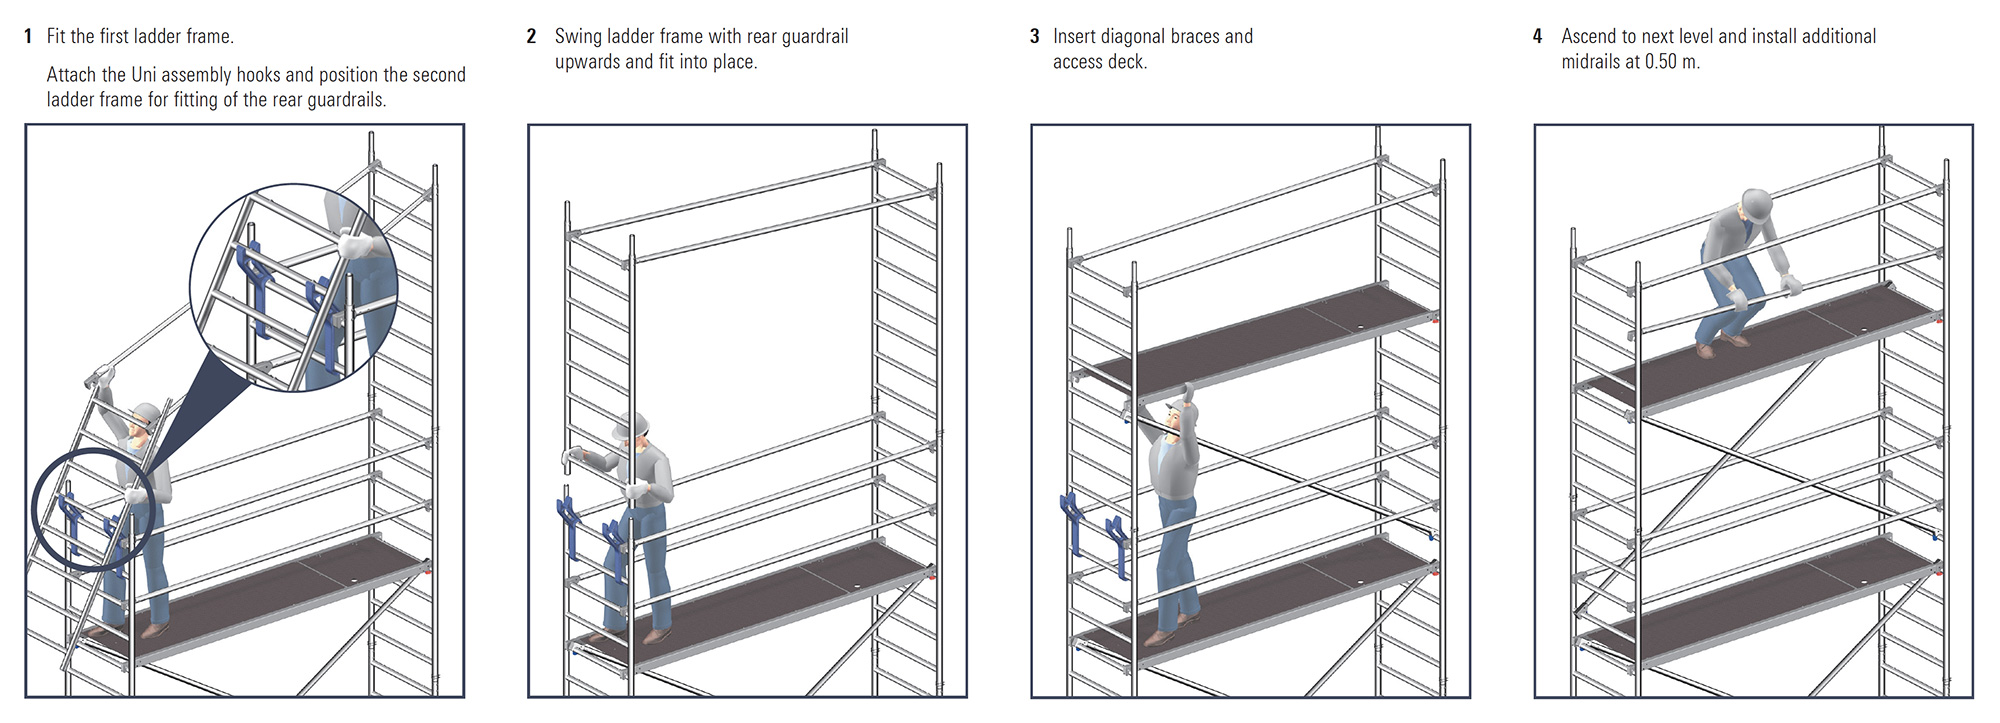 Uni assembly hooks step-by-step guide